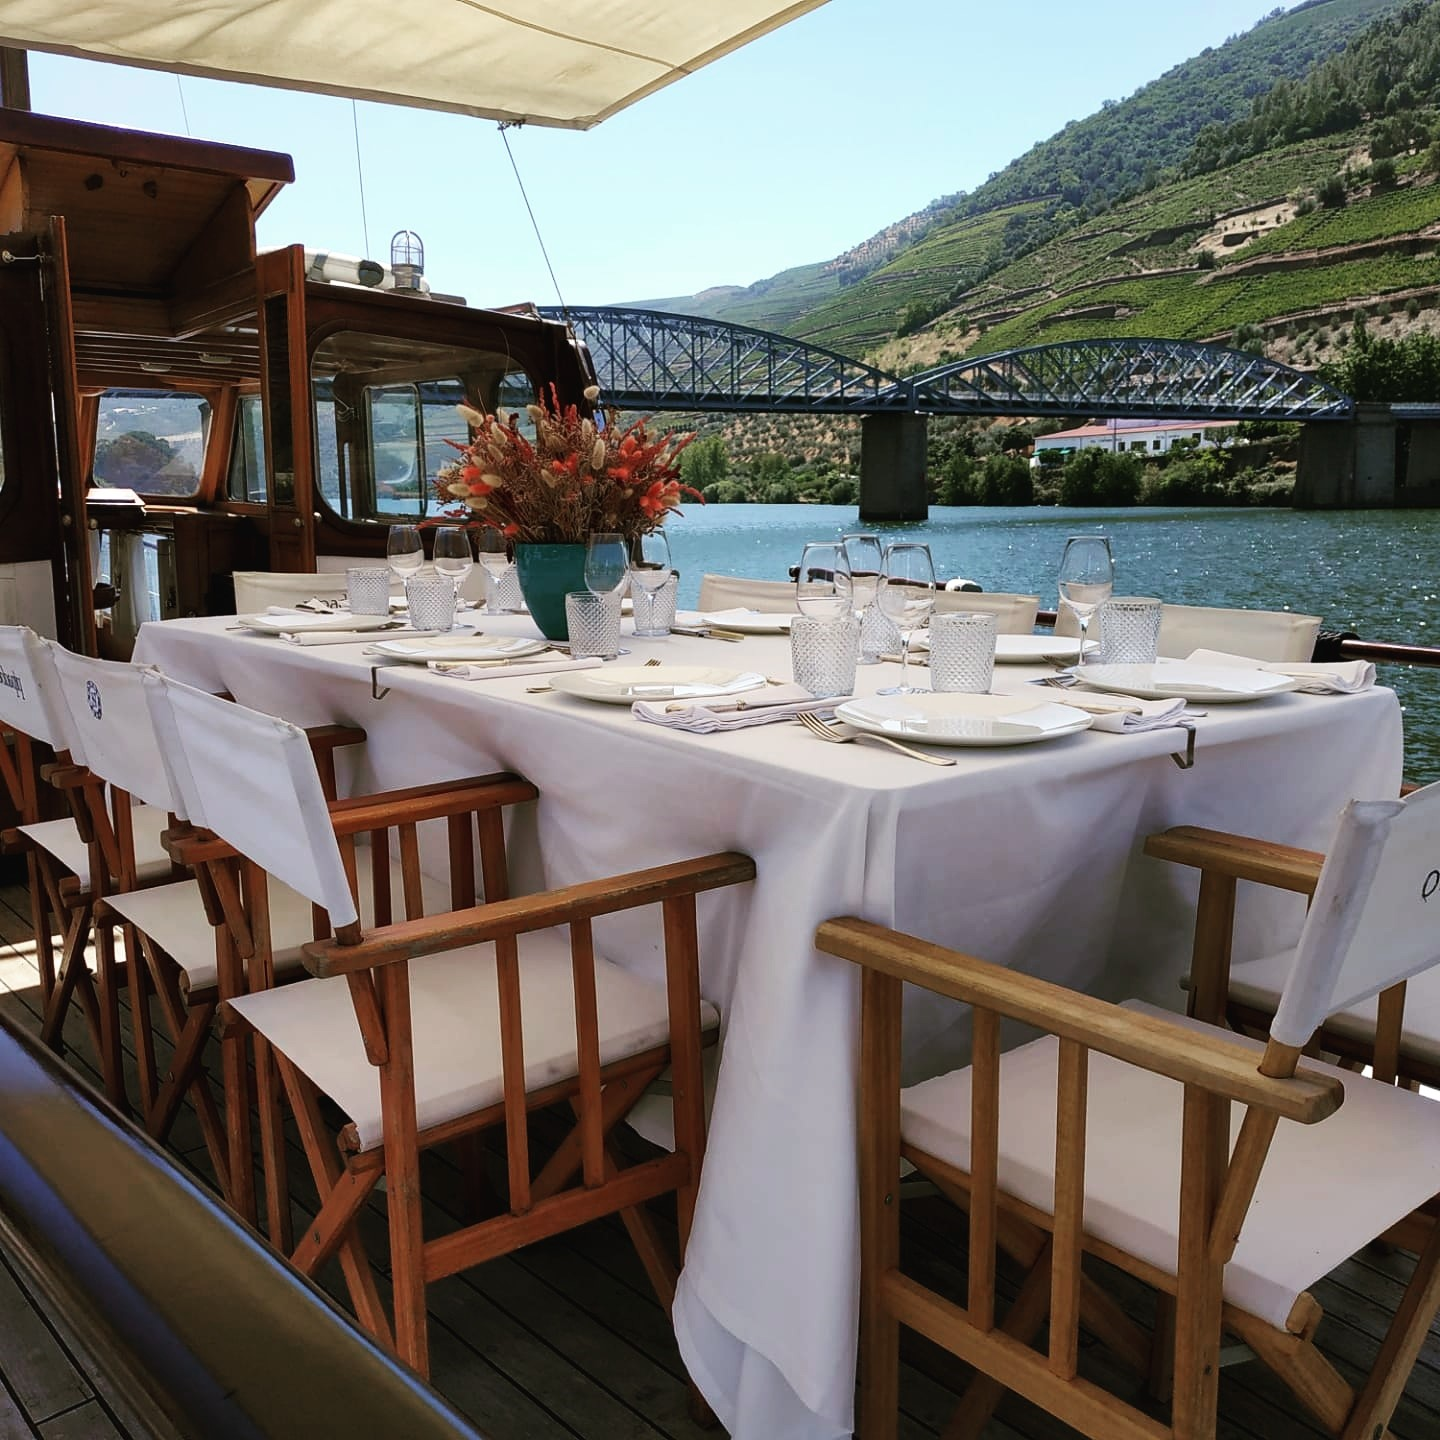 Top Cruises Tours: 3-Day Tour in Douro with a Cruise in the Douro River